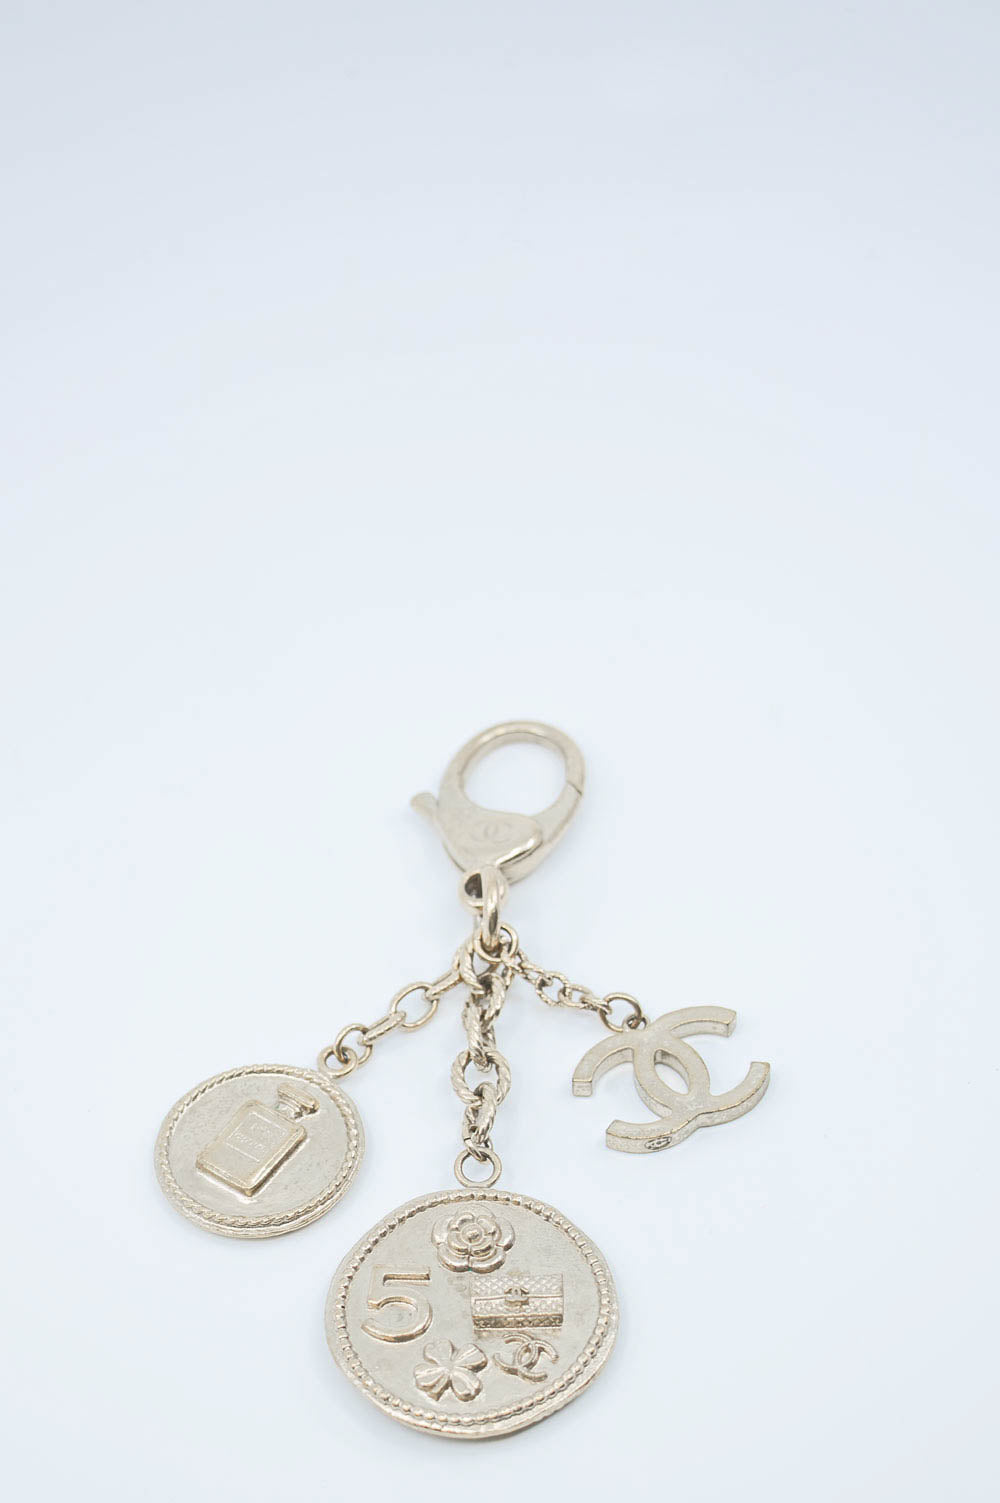 CHANEL Keyring/Bag Charm